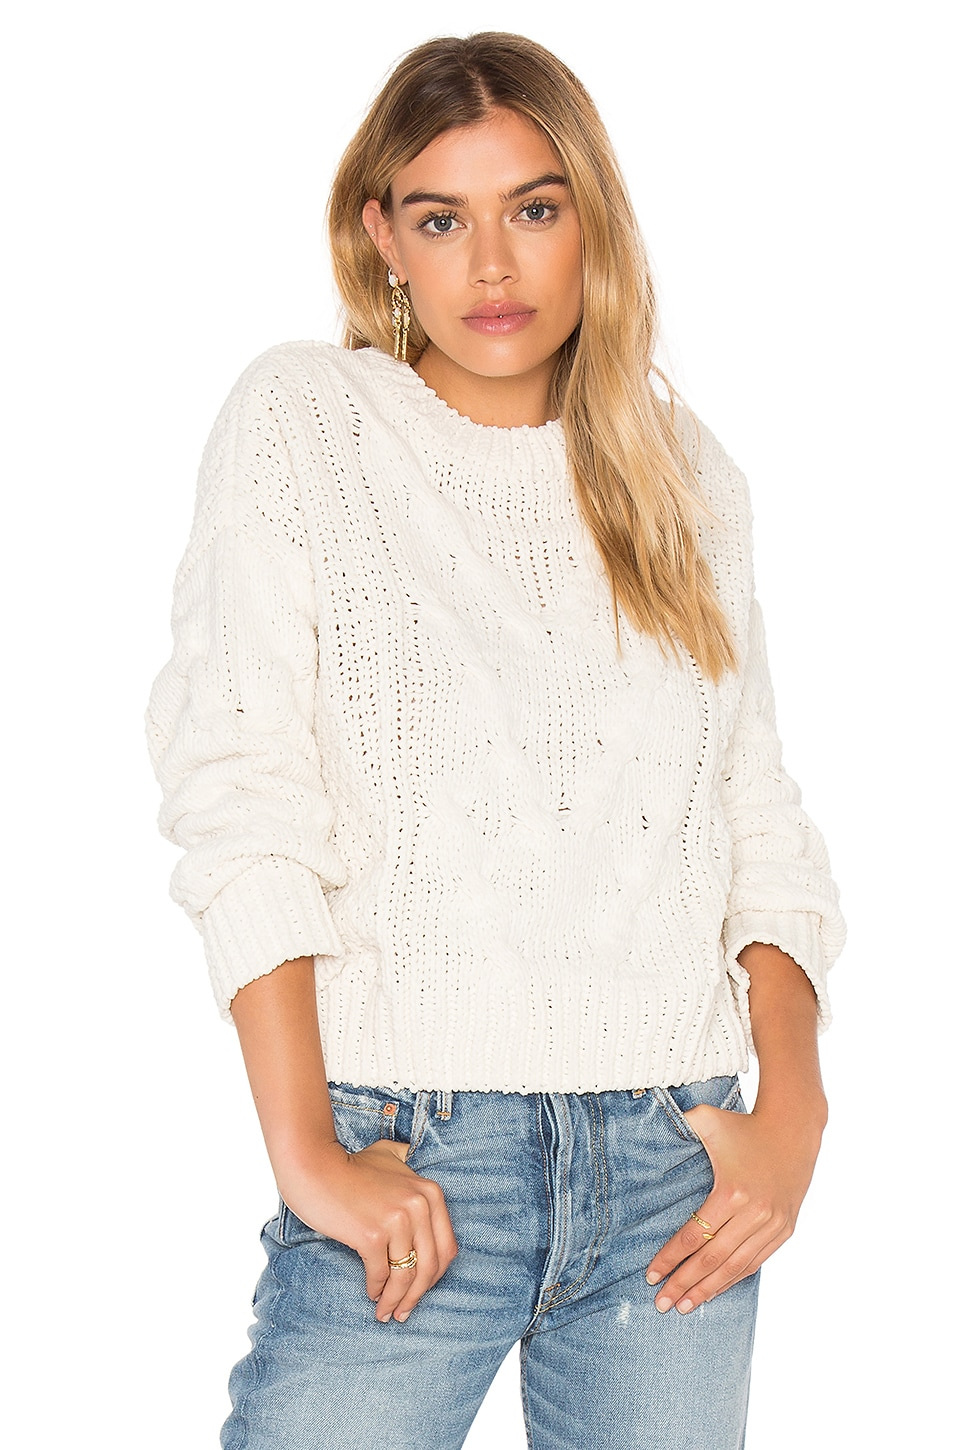 J.O.A. Long Sleeve Crew Neck Sweater in Ivory